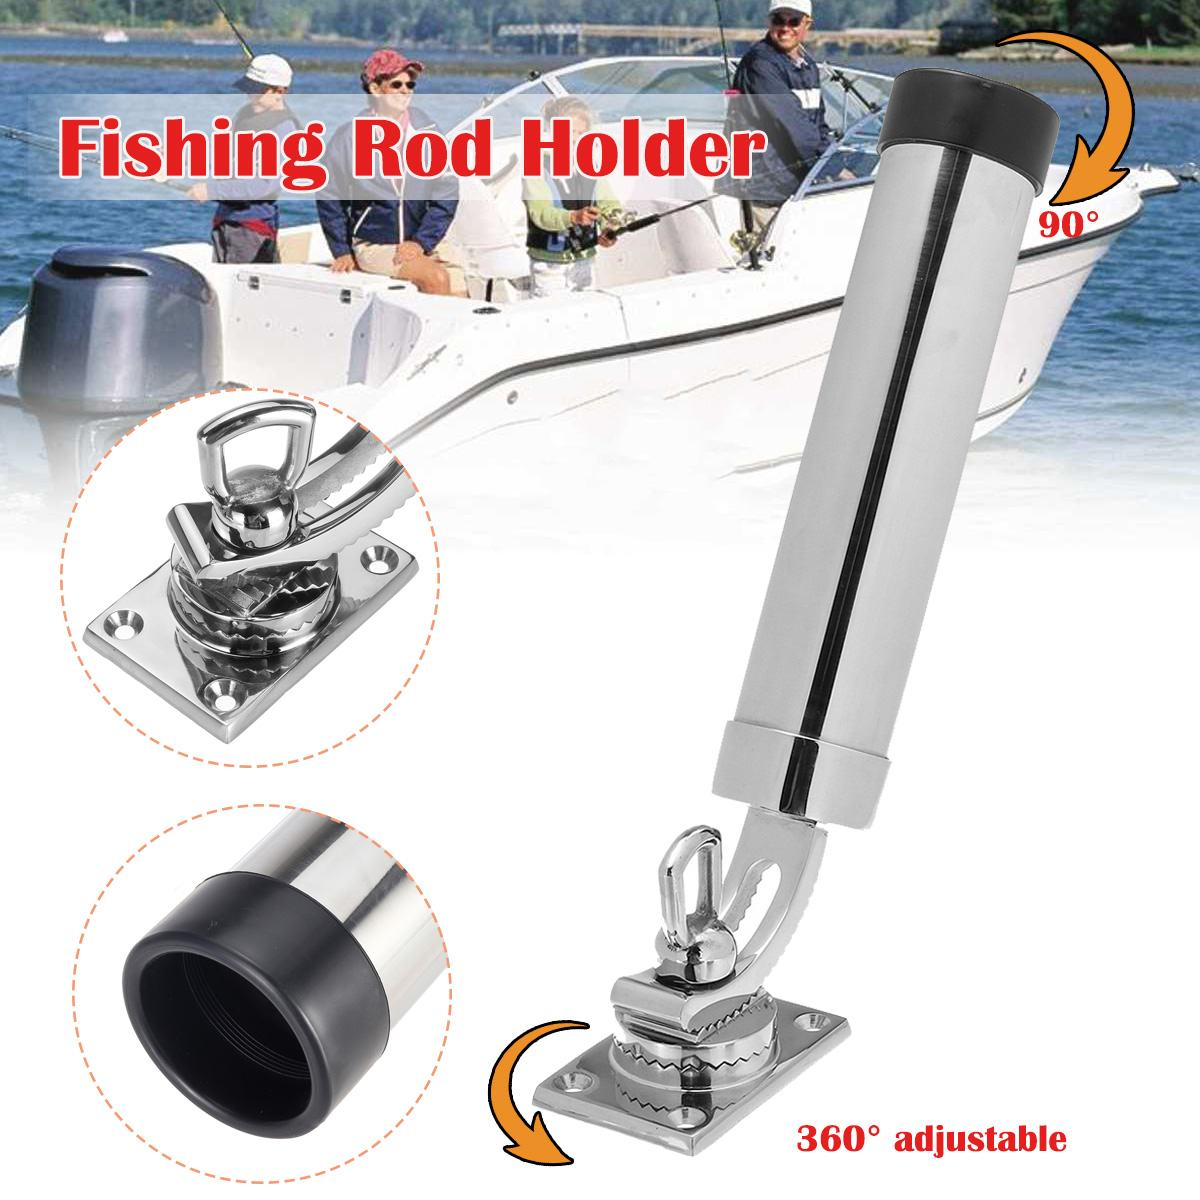 Adjustable Removable Deck Mount Stainless Steel Fishing Rod Holder Bracket Support For Marine Boat And Yacht 360 Degree